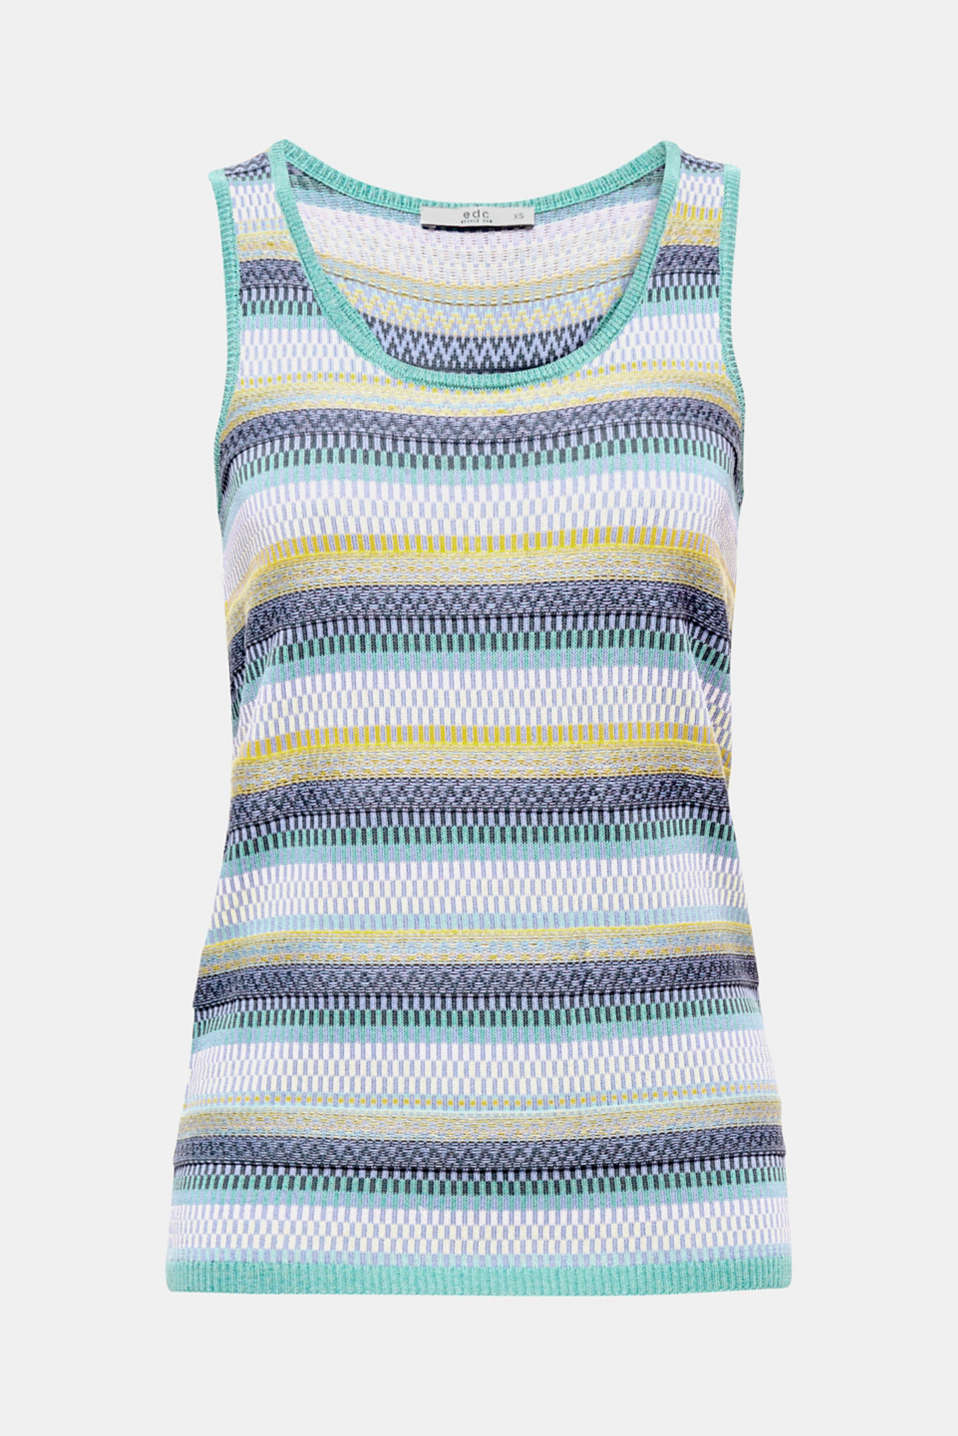 The fine knit and textured stripe pattern make this top a summer favourite.